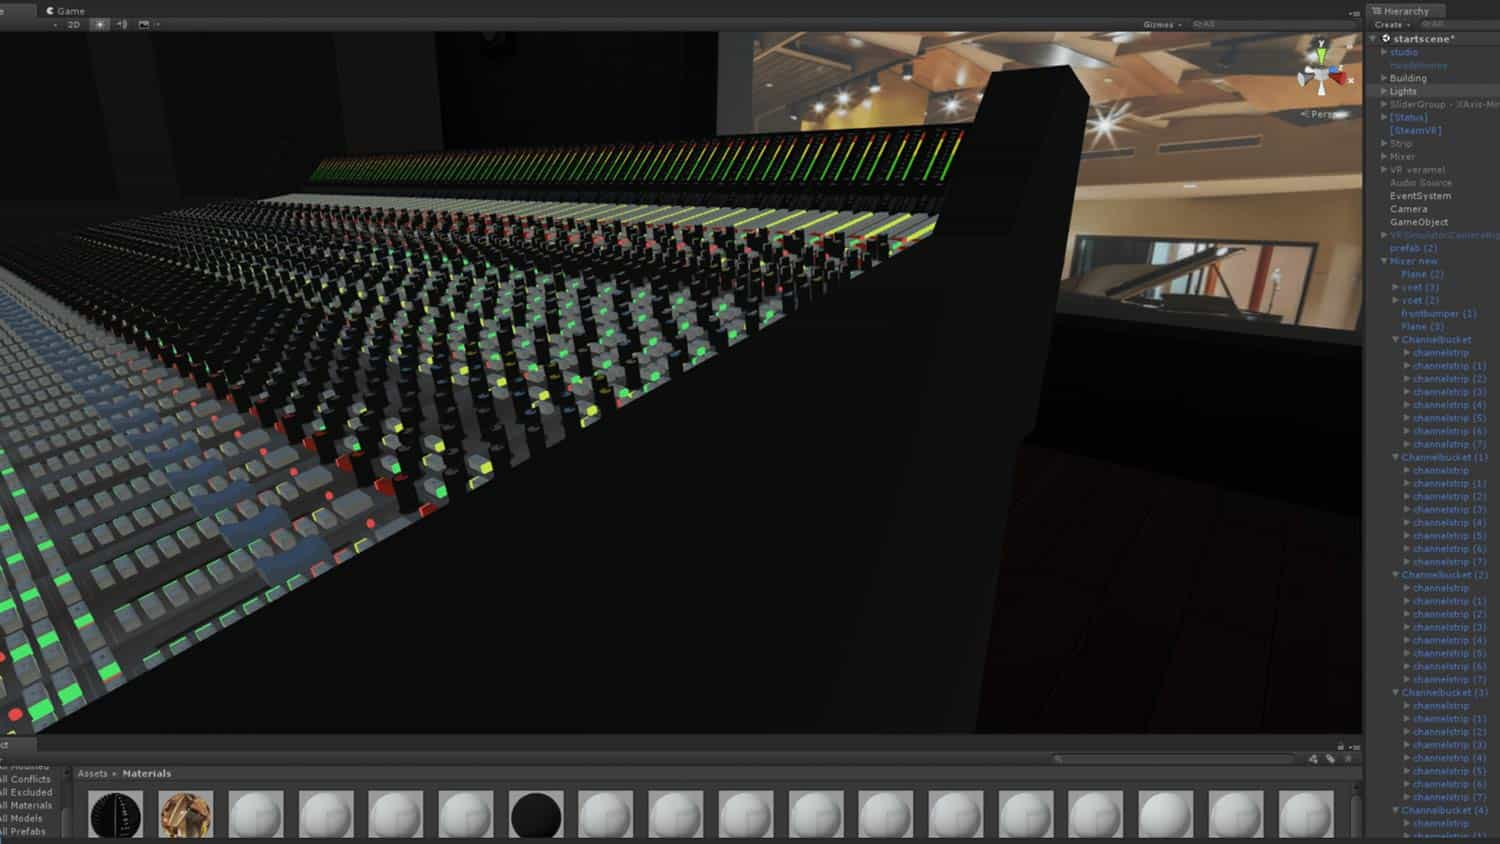 Recording mixing console in VR